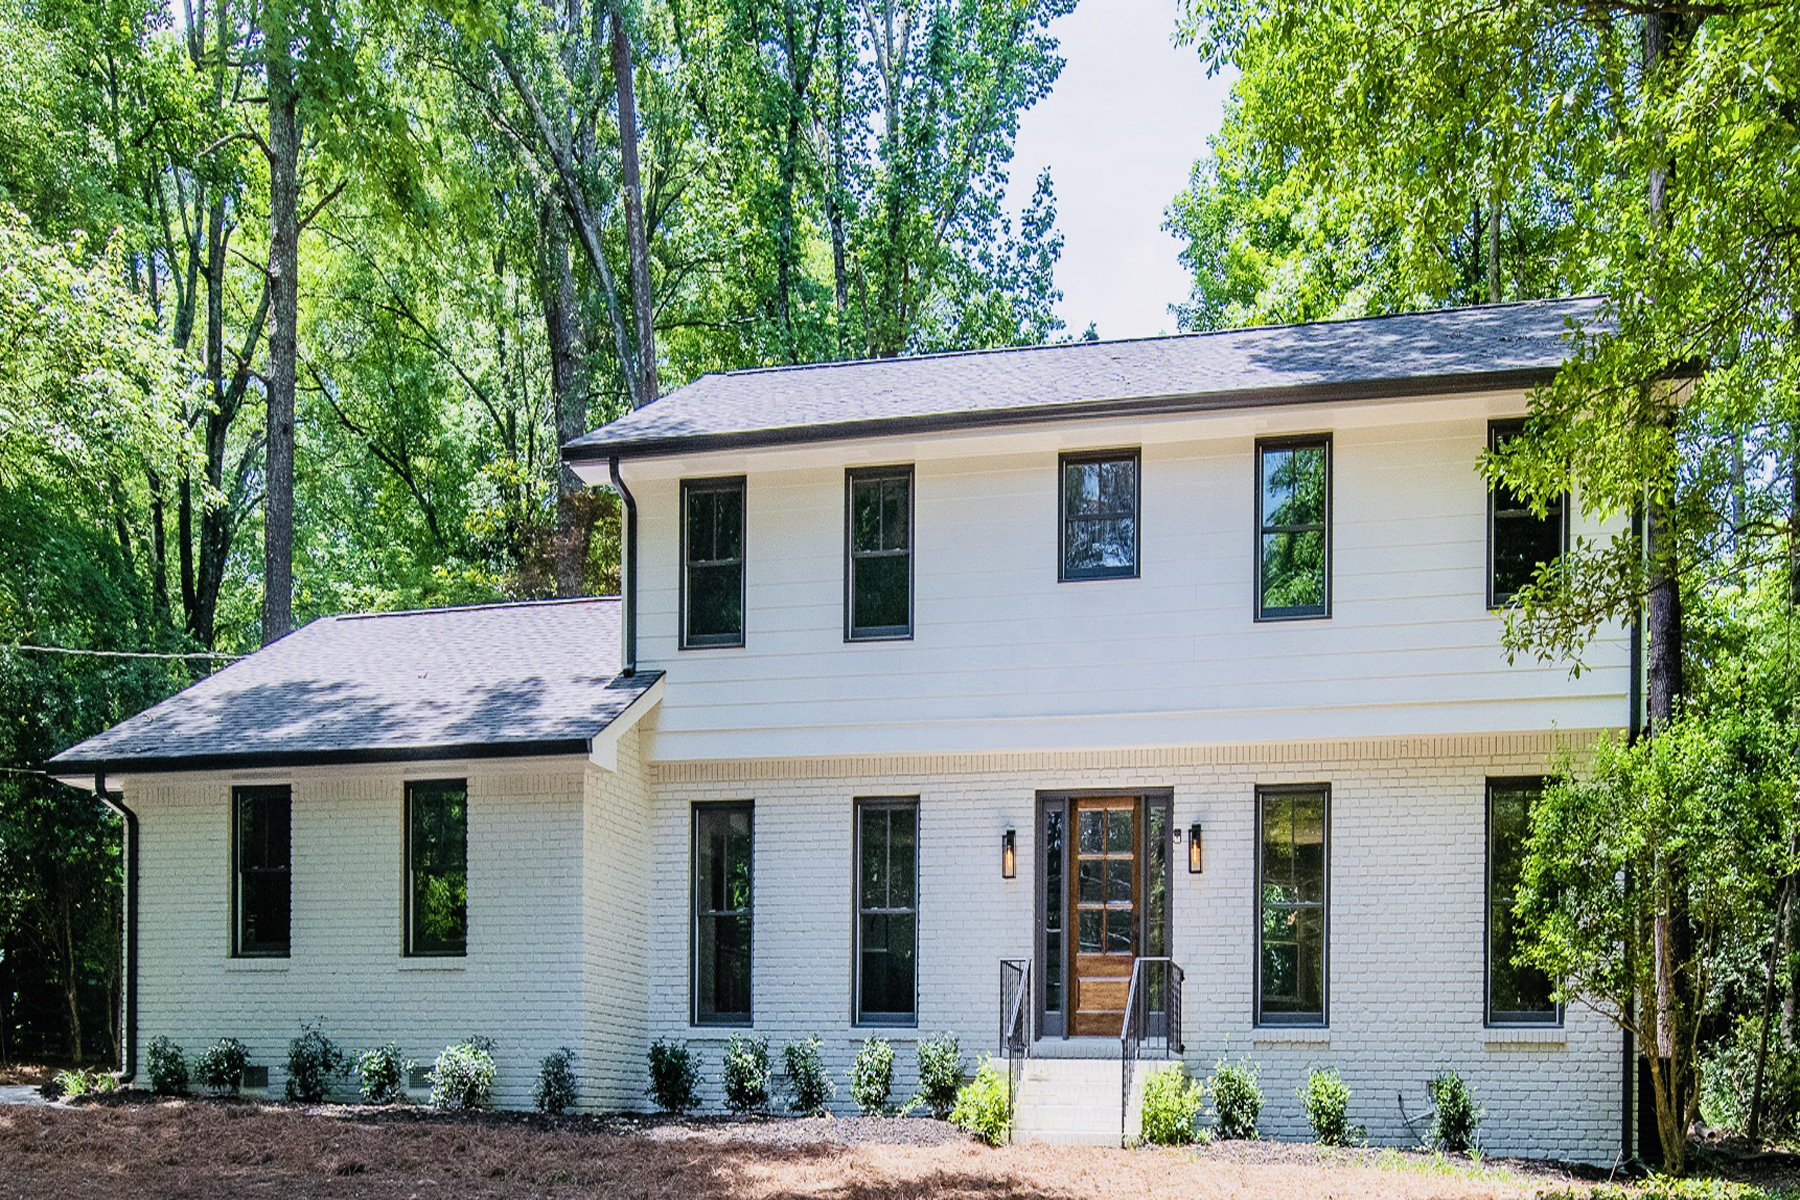 Single Family Homes for Sale at Modern/Rustic Renovation Close to Austin Elementary 1187 Verdon Dr Dunwoody, Georgia 30338 United States